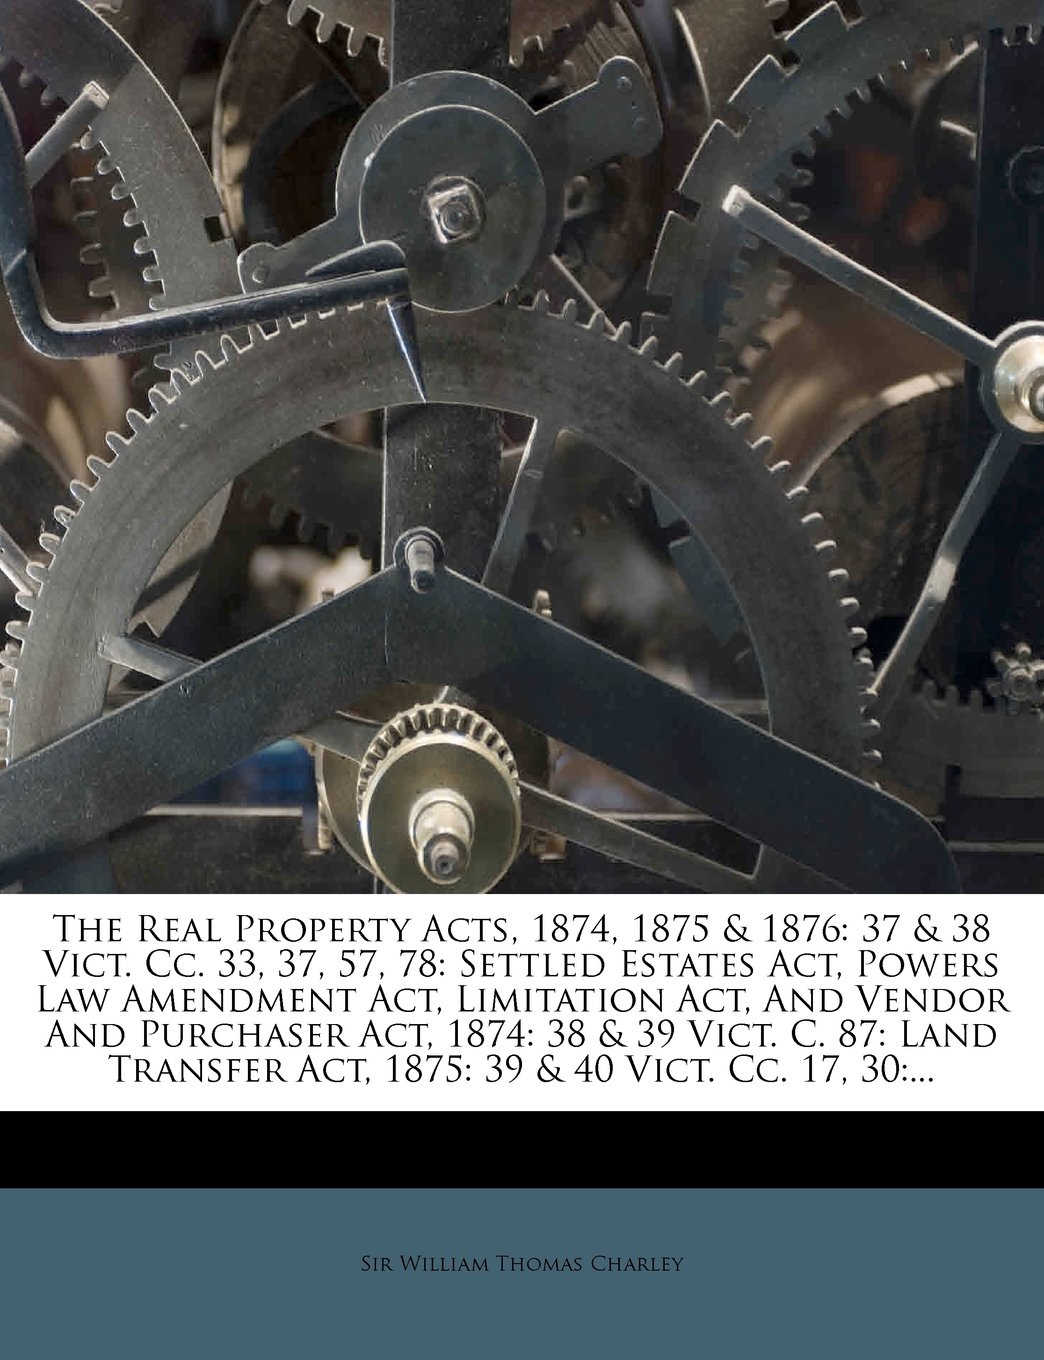 The Real Property Acts, 1874, 1875 & 1876: 37 & 38 Vict. Cc. 33, 37, 57, 78: Settled Estates Act, Powers Law Amendment Act, Limitation Act, And Vendor ... Act, 1875: 39 & 40 Vict. Cc. 17, 30:... ebook